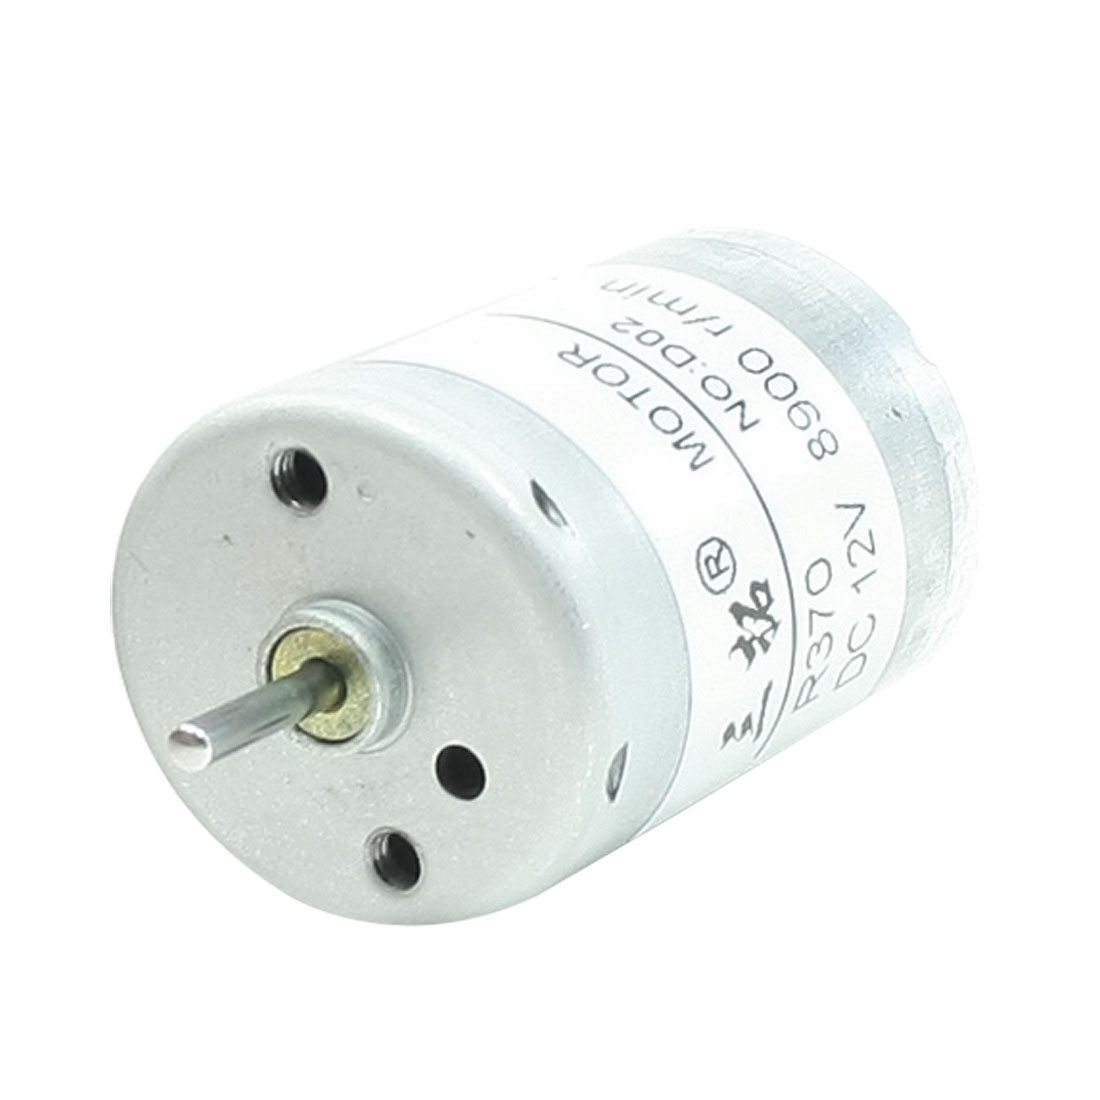 8900RPM 12V 2 Terminal Connector Cylindrical Micro DC Motor